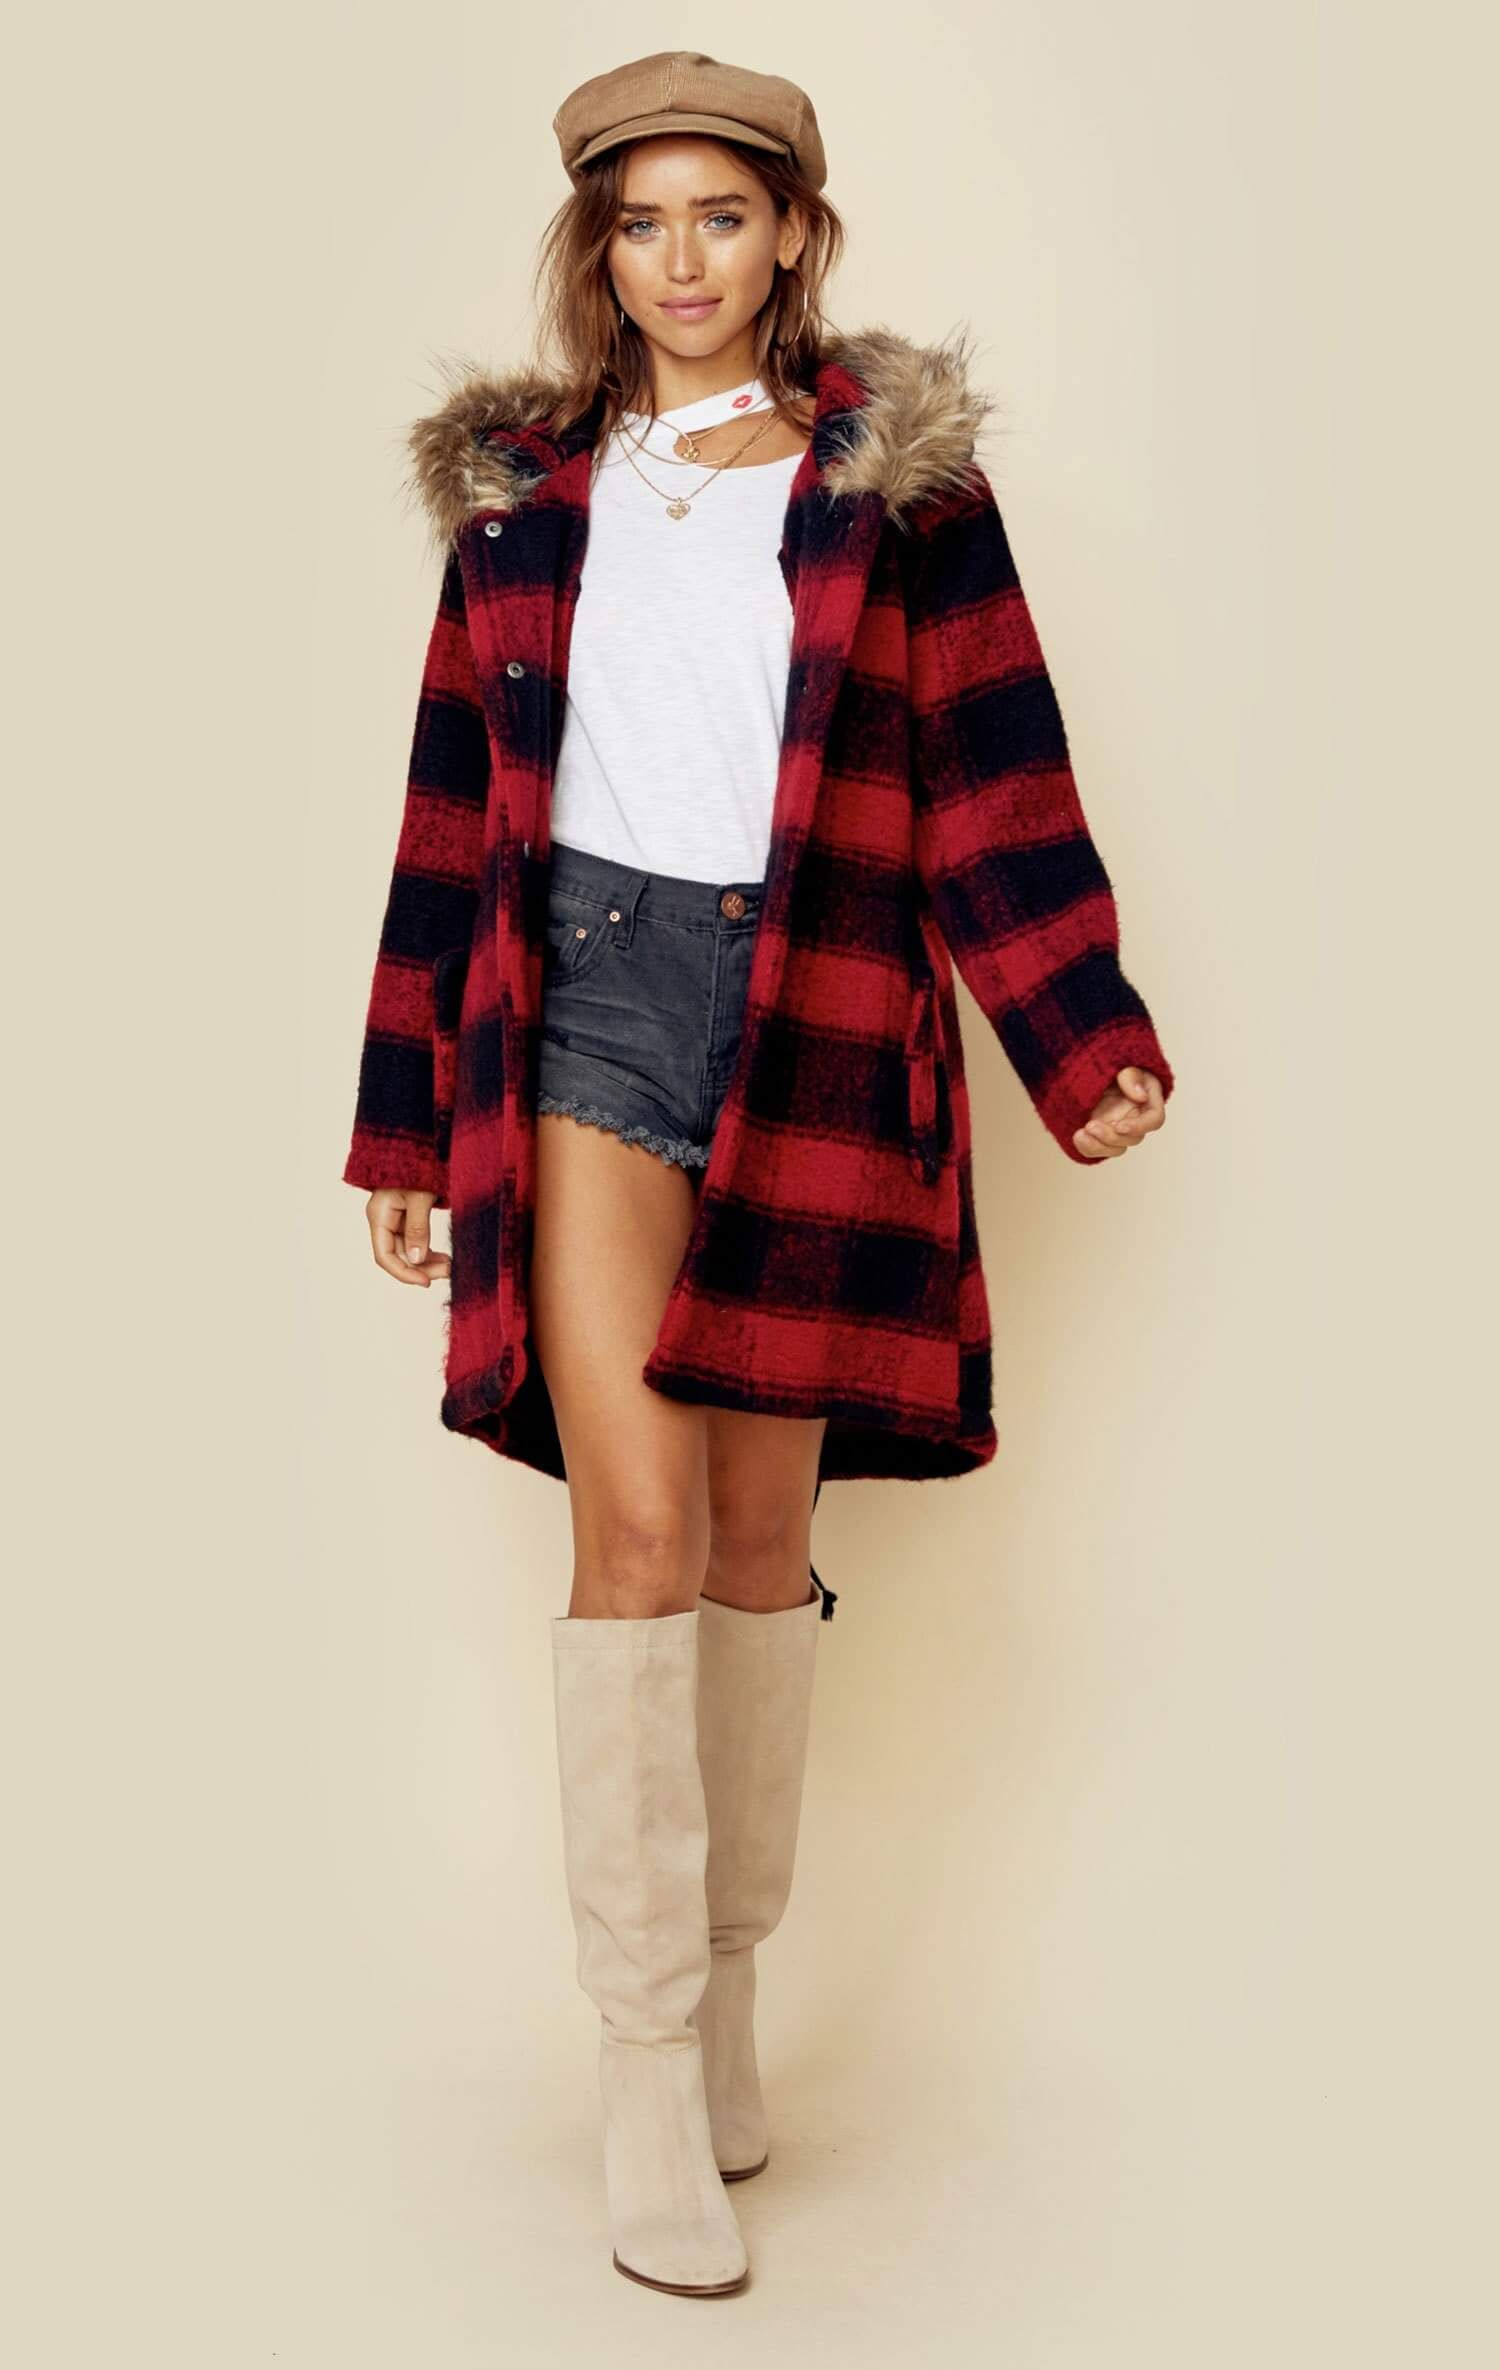 Flannel outfits with leggings  LIA COAT  NEW ARRIVALS  Pinterest  California girl style and Mini